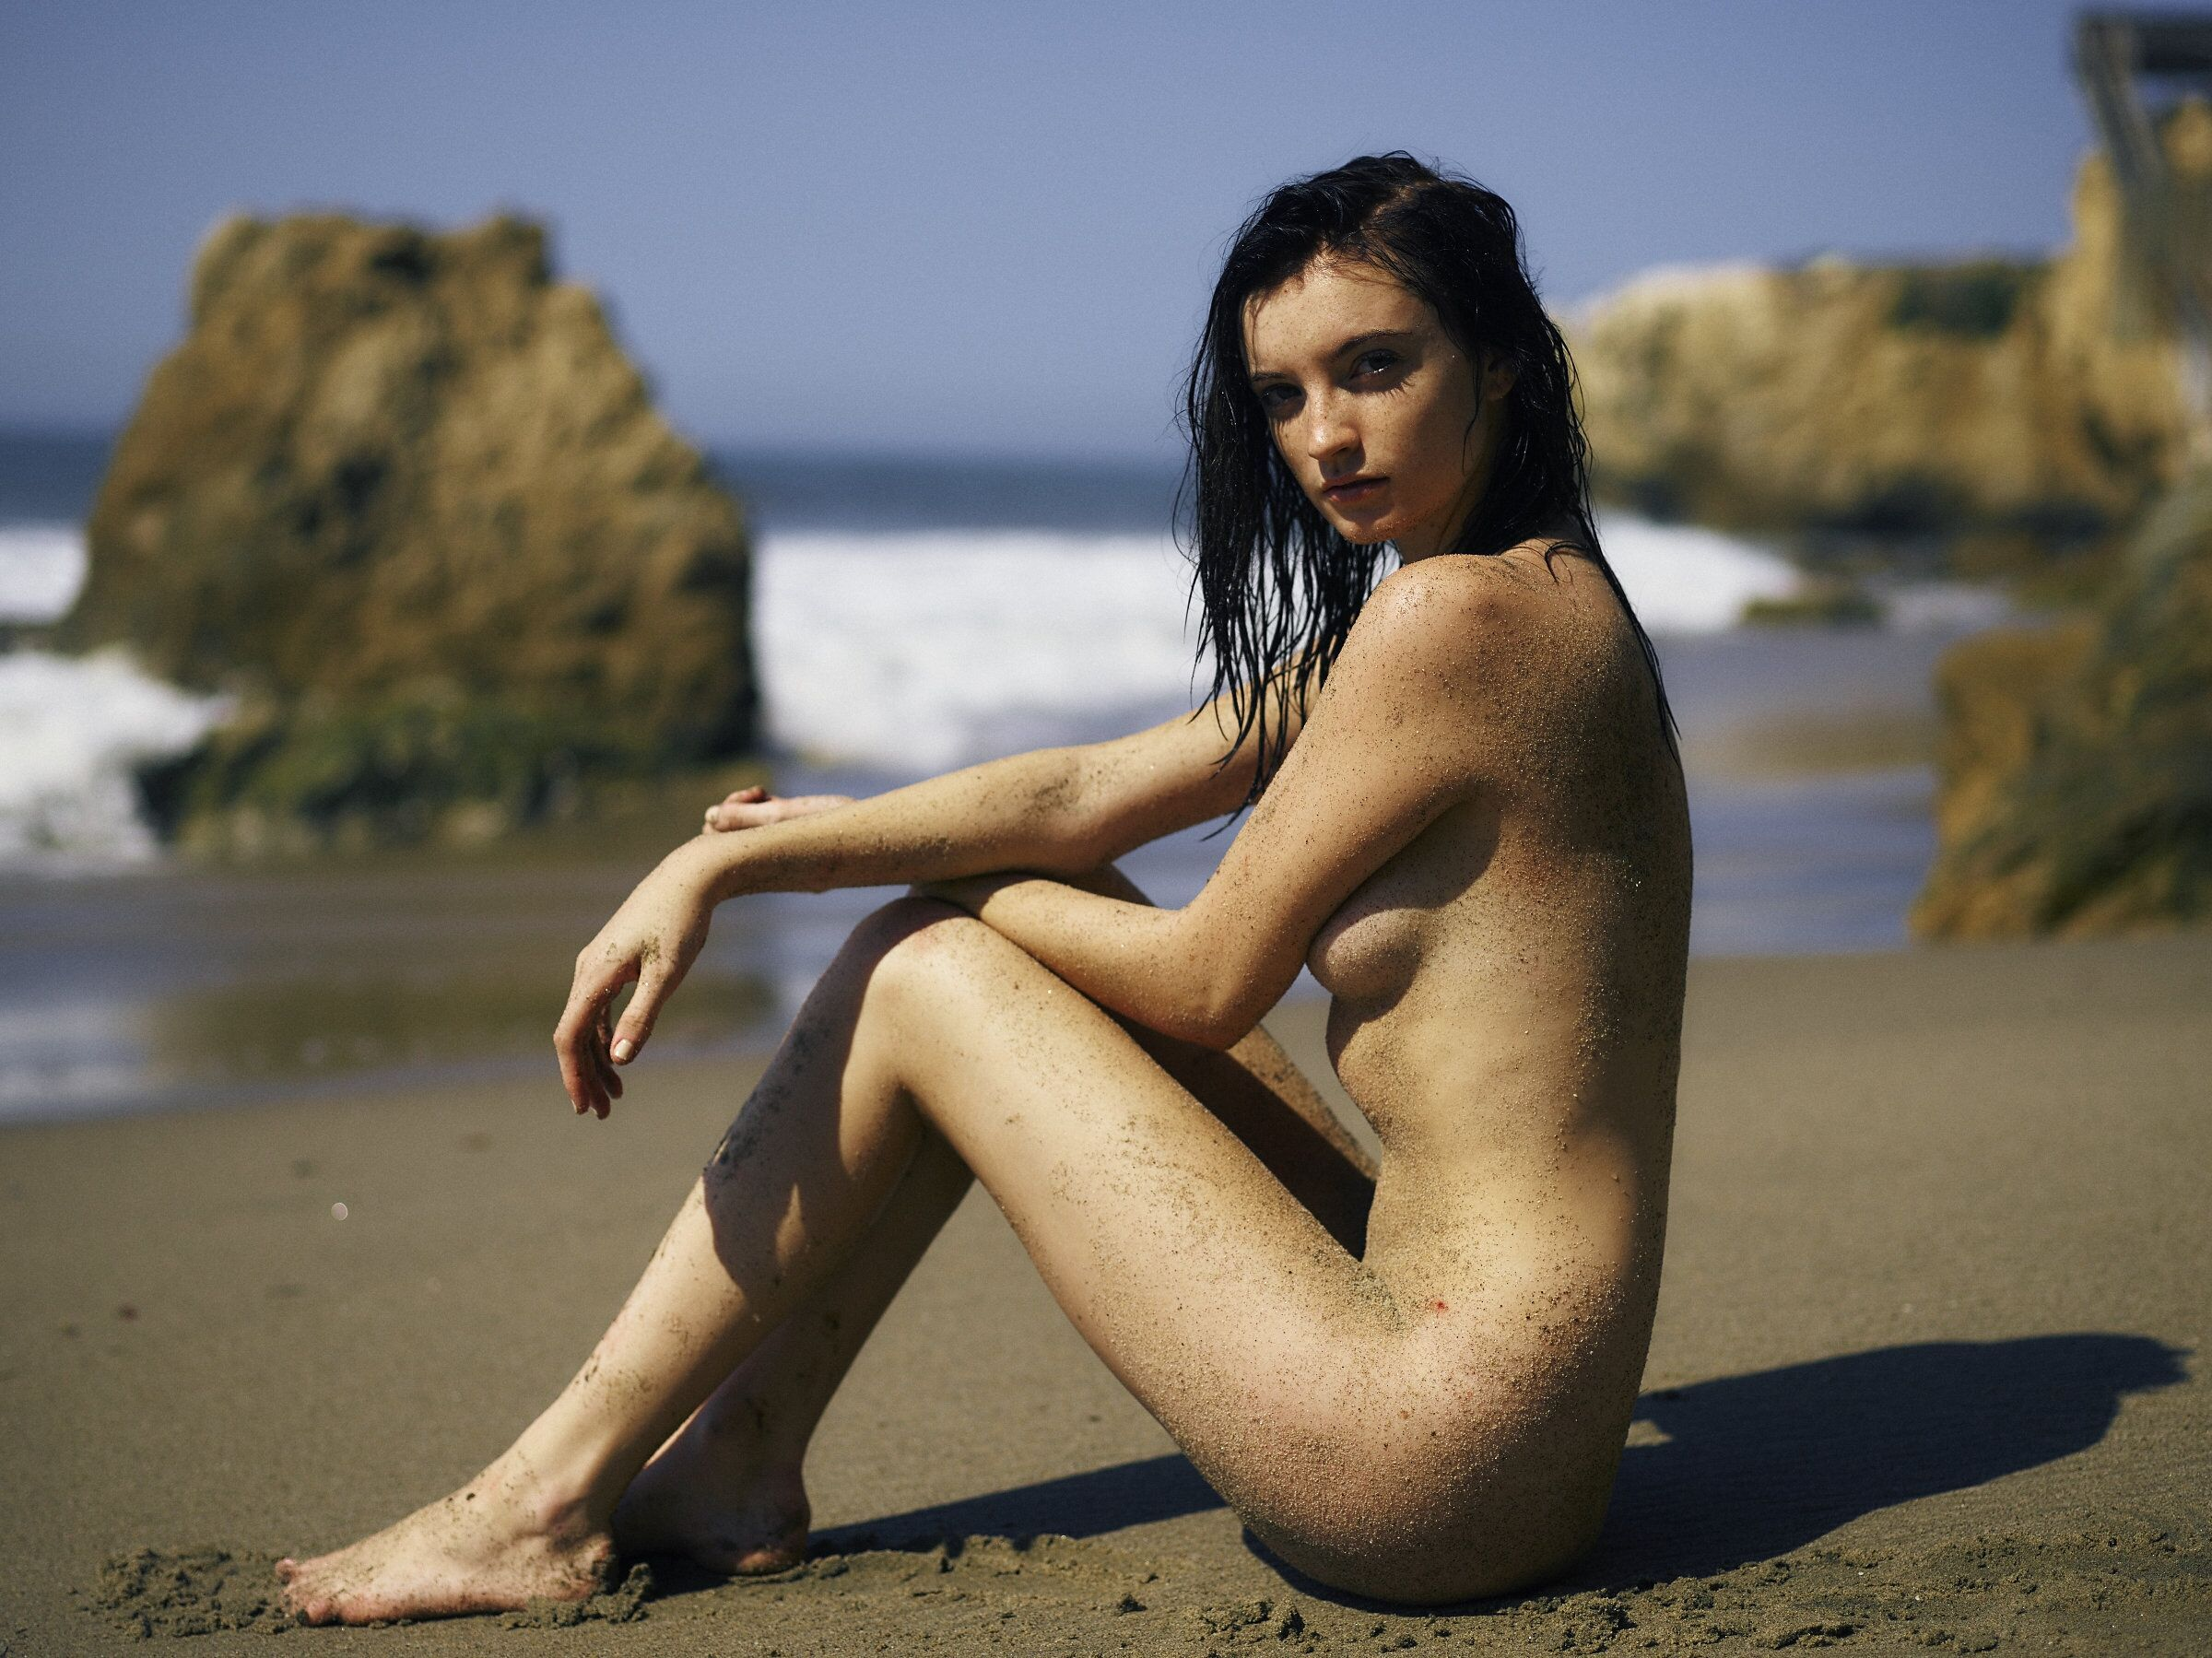 Nude Photos Of Hannah Mas...